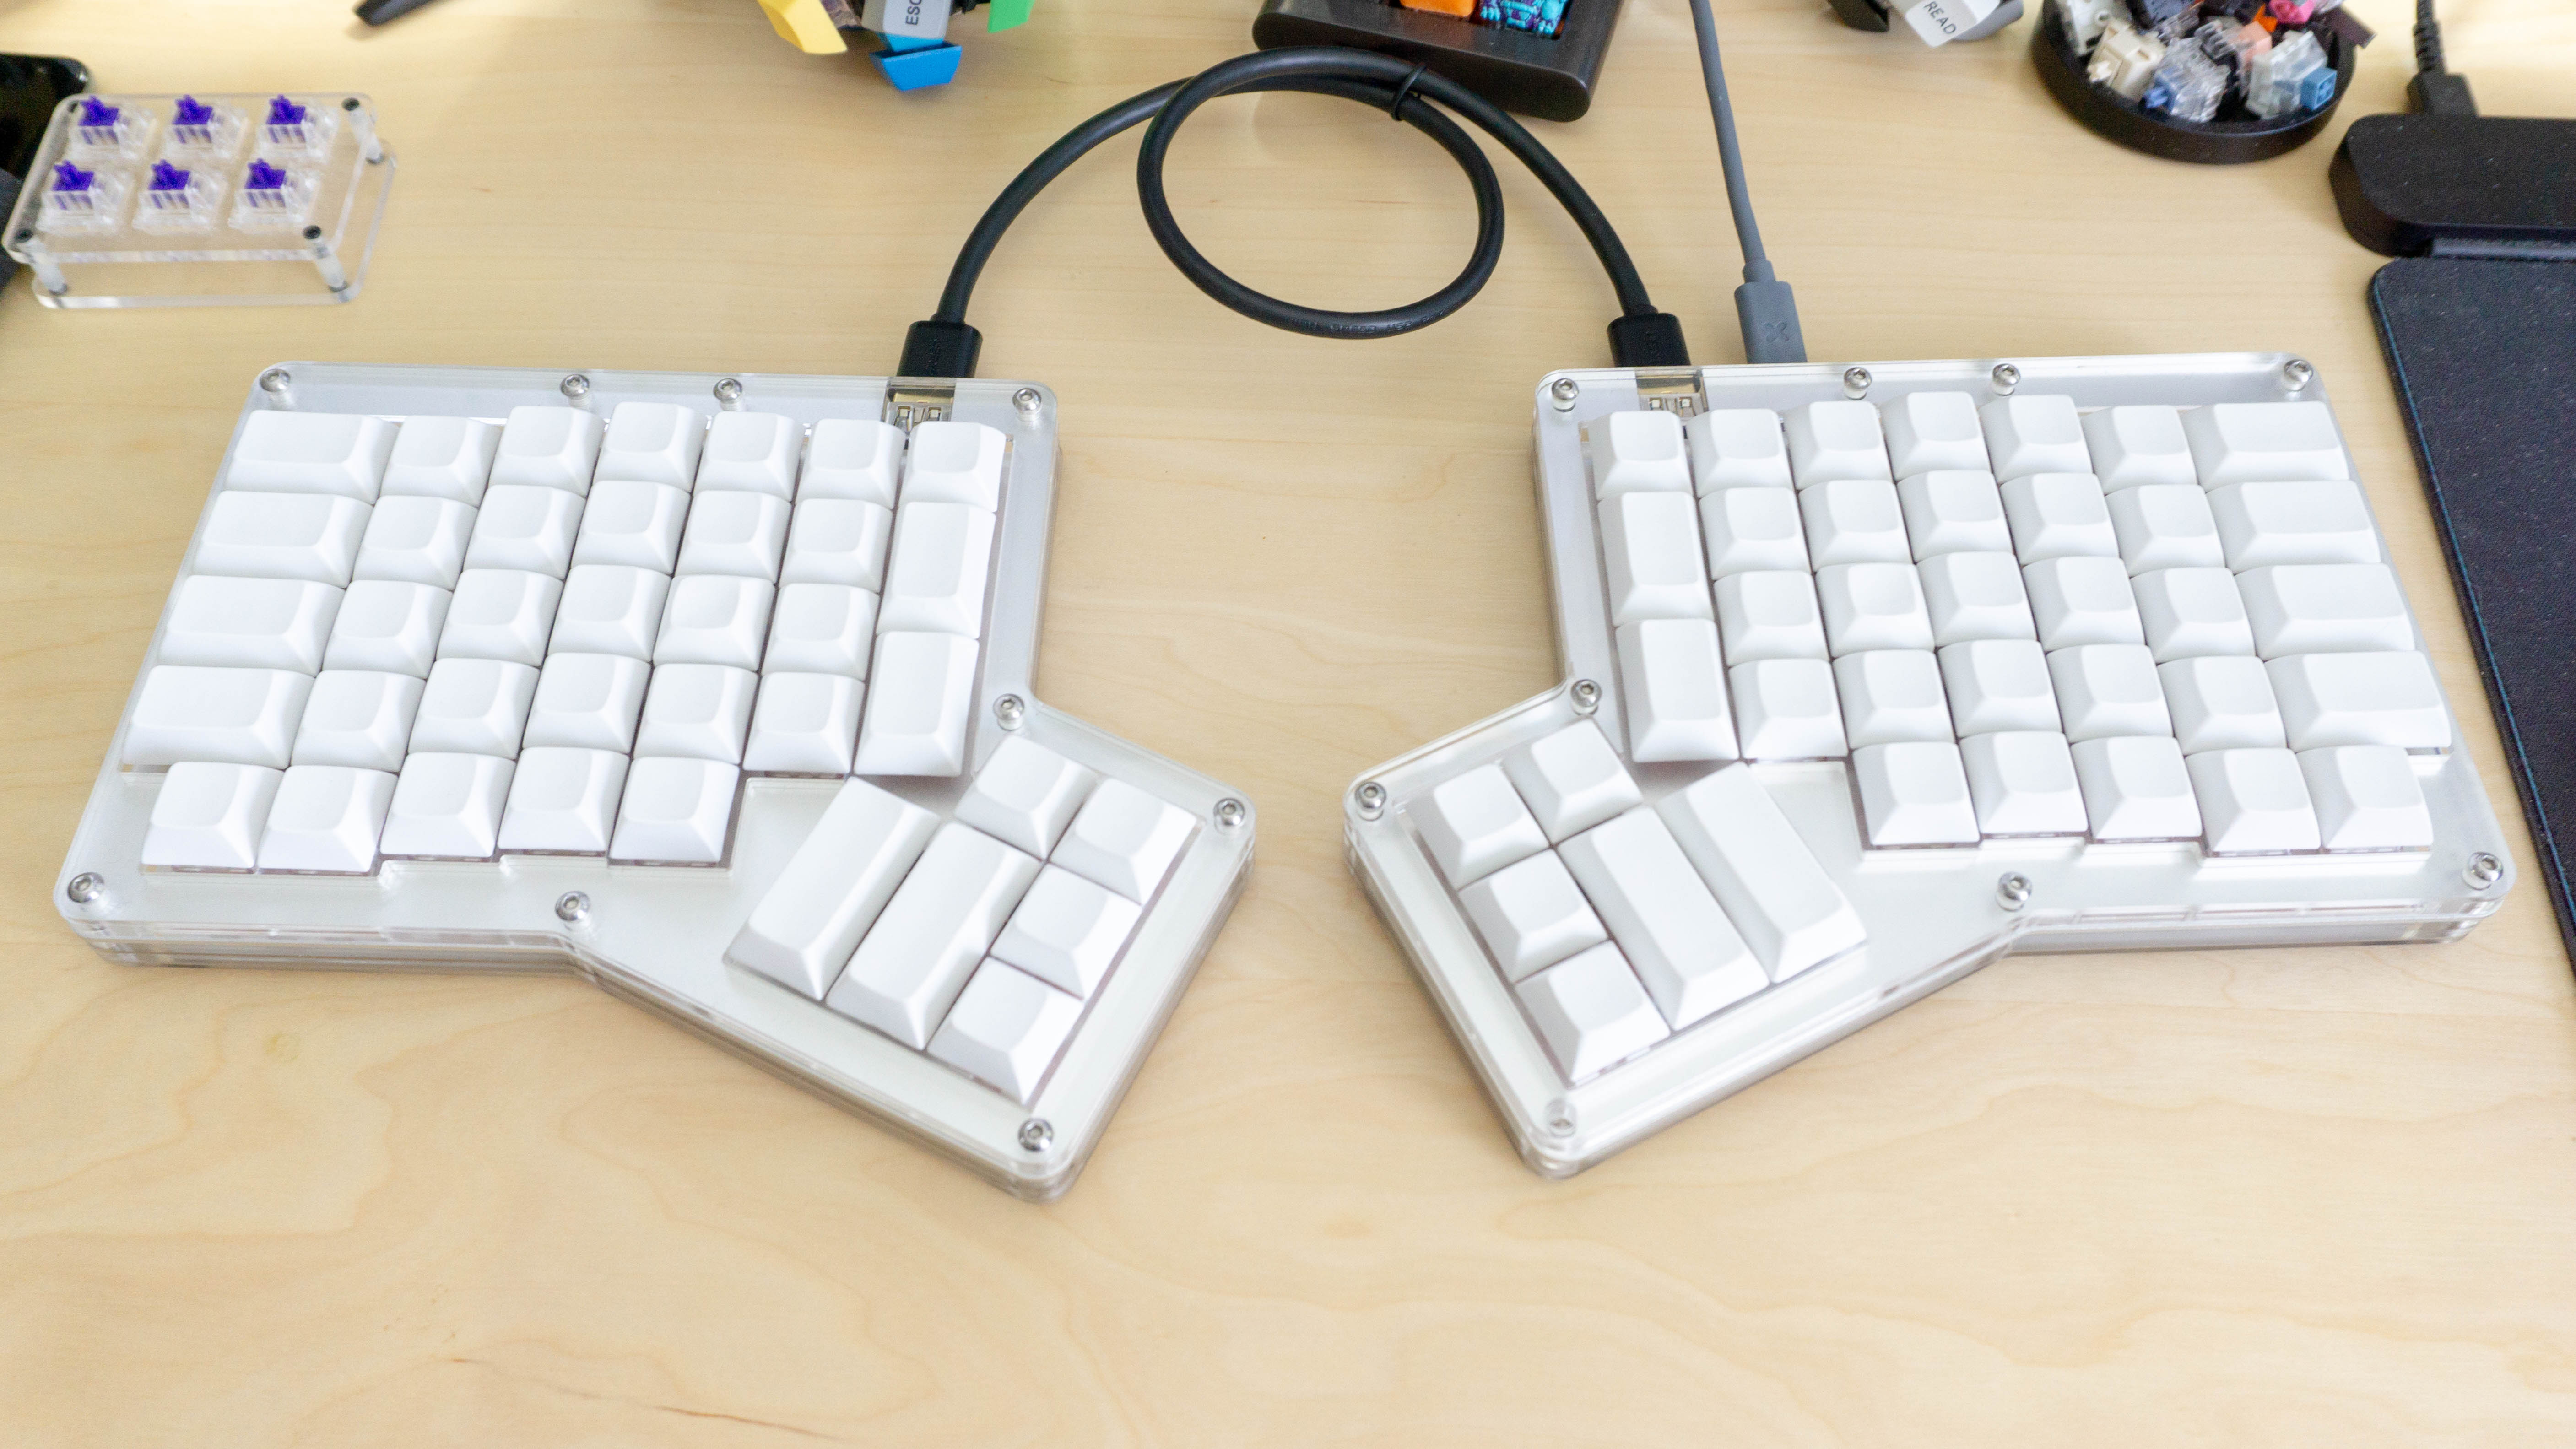 6bce0c43685 ErgoDox keyboards are split halves that are shaped like your hands, and the  newest Ergodox on the market even lets you swap switches without soldering.